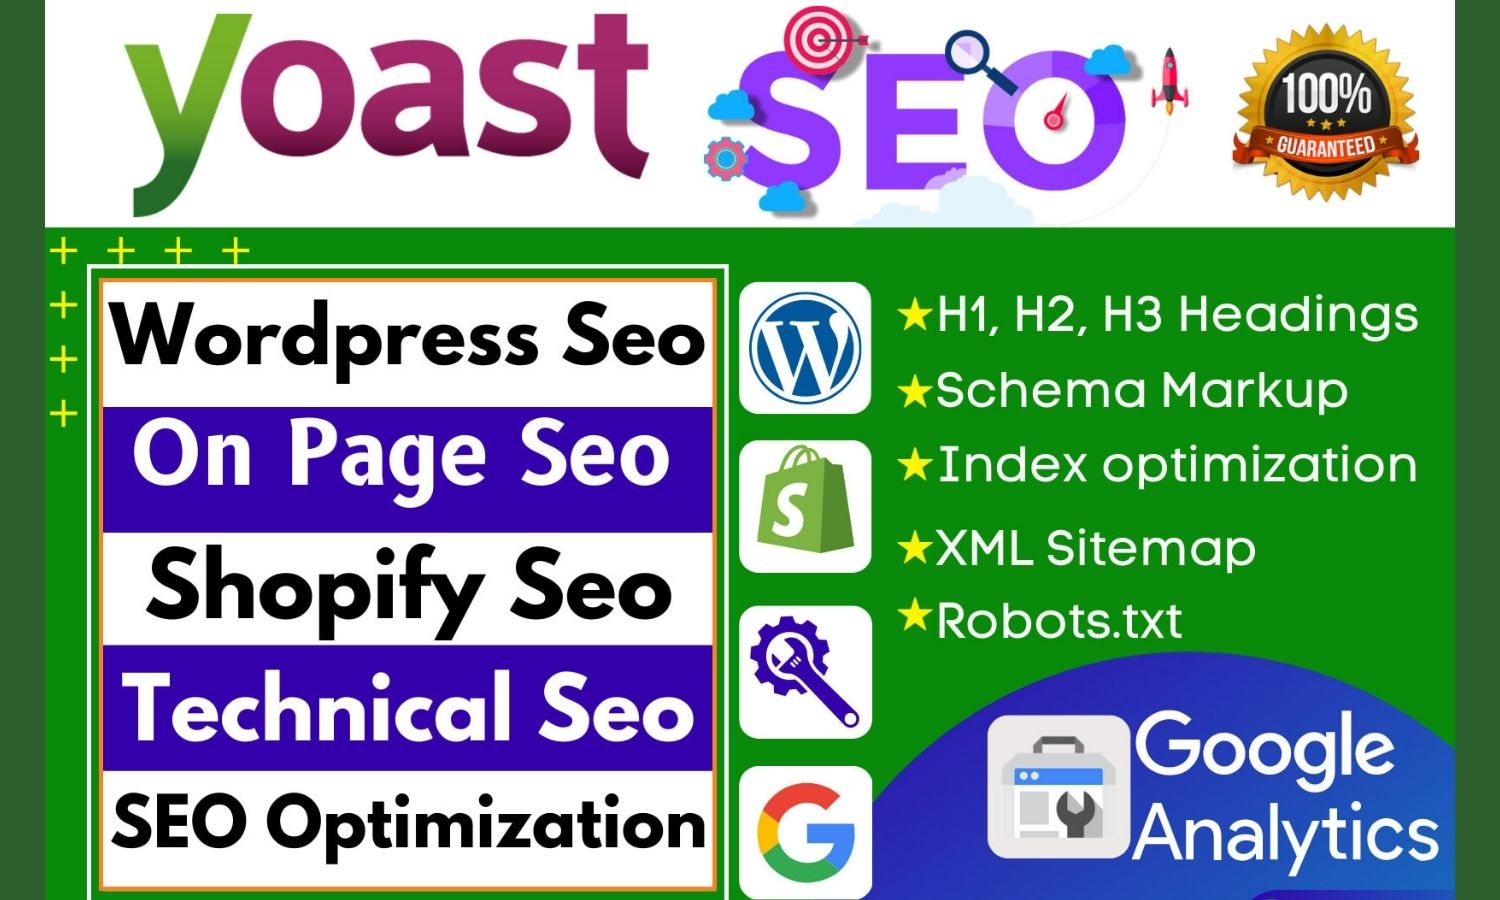 I will do wordpress yoast on page SEO and technical optimization for google 1st ranking